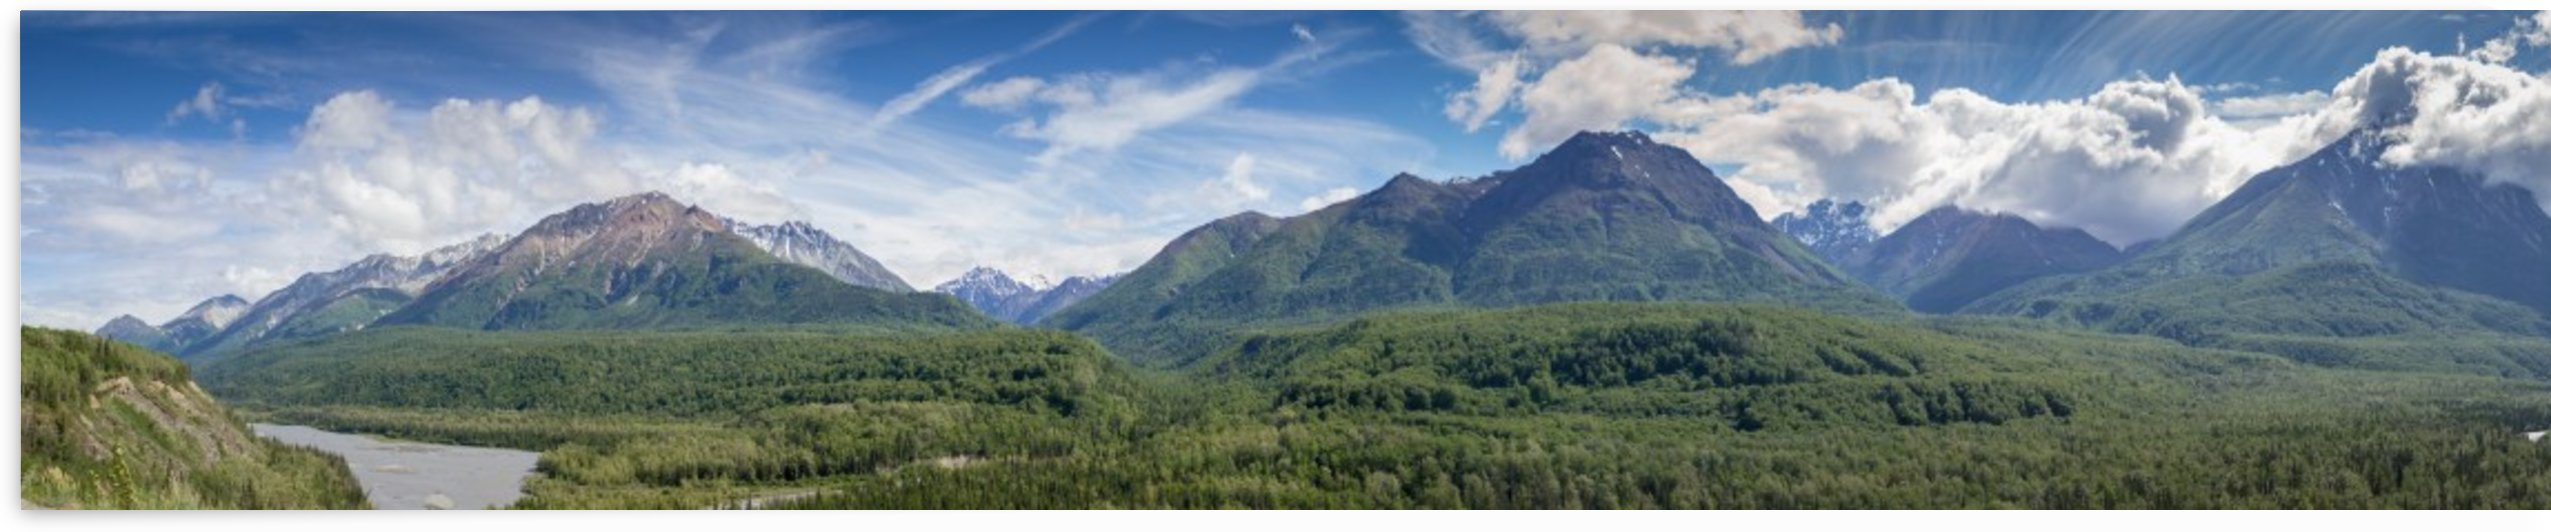 Photos Alaska Mountain Panorama by 3Quarters Images